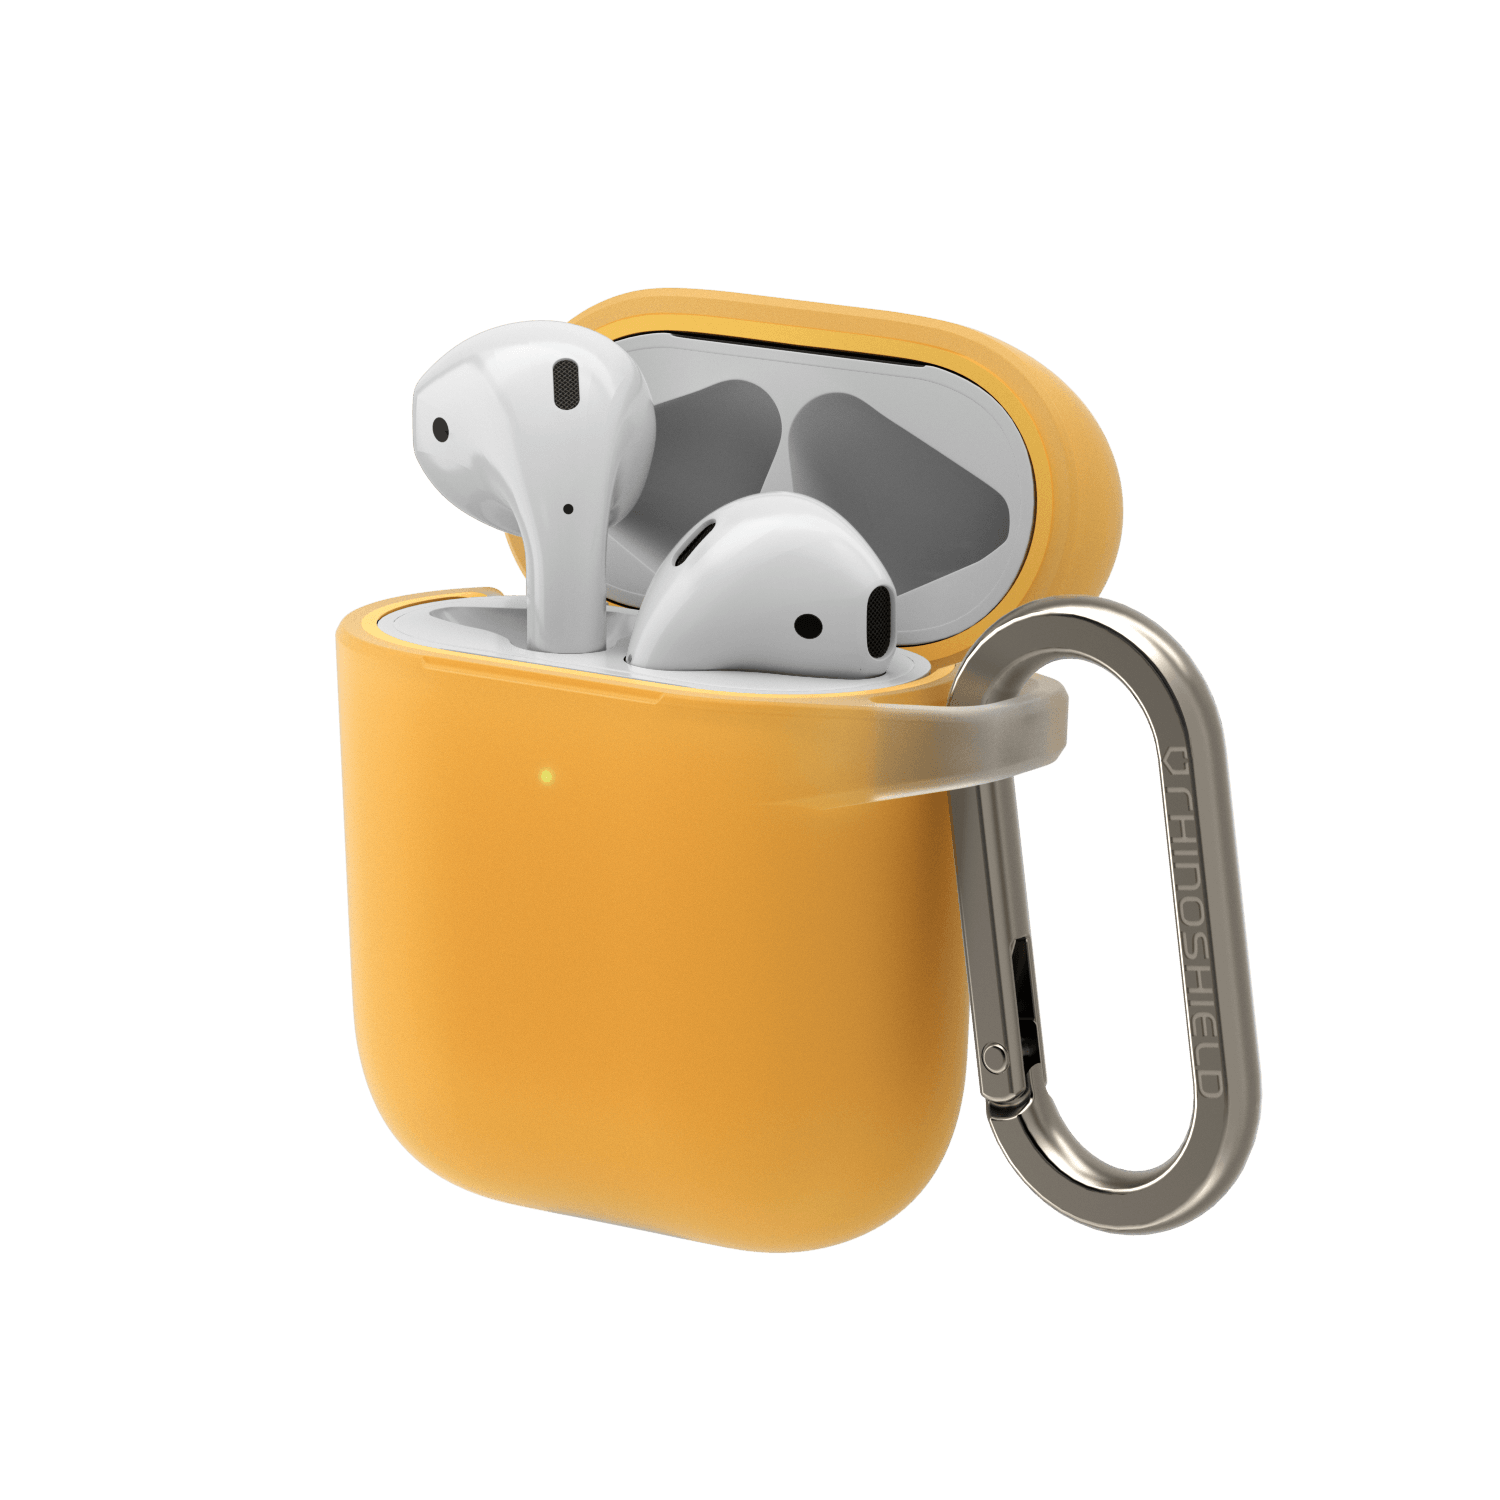 RhinoShield AirPods Case